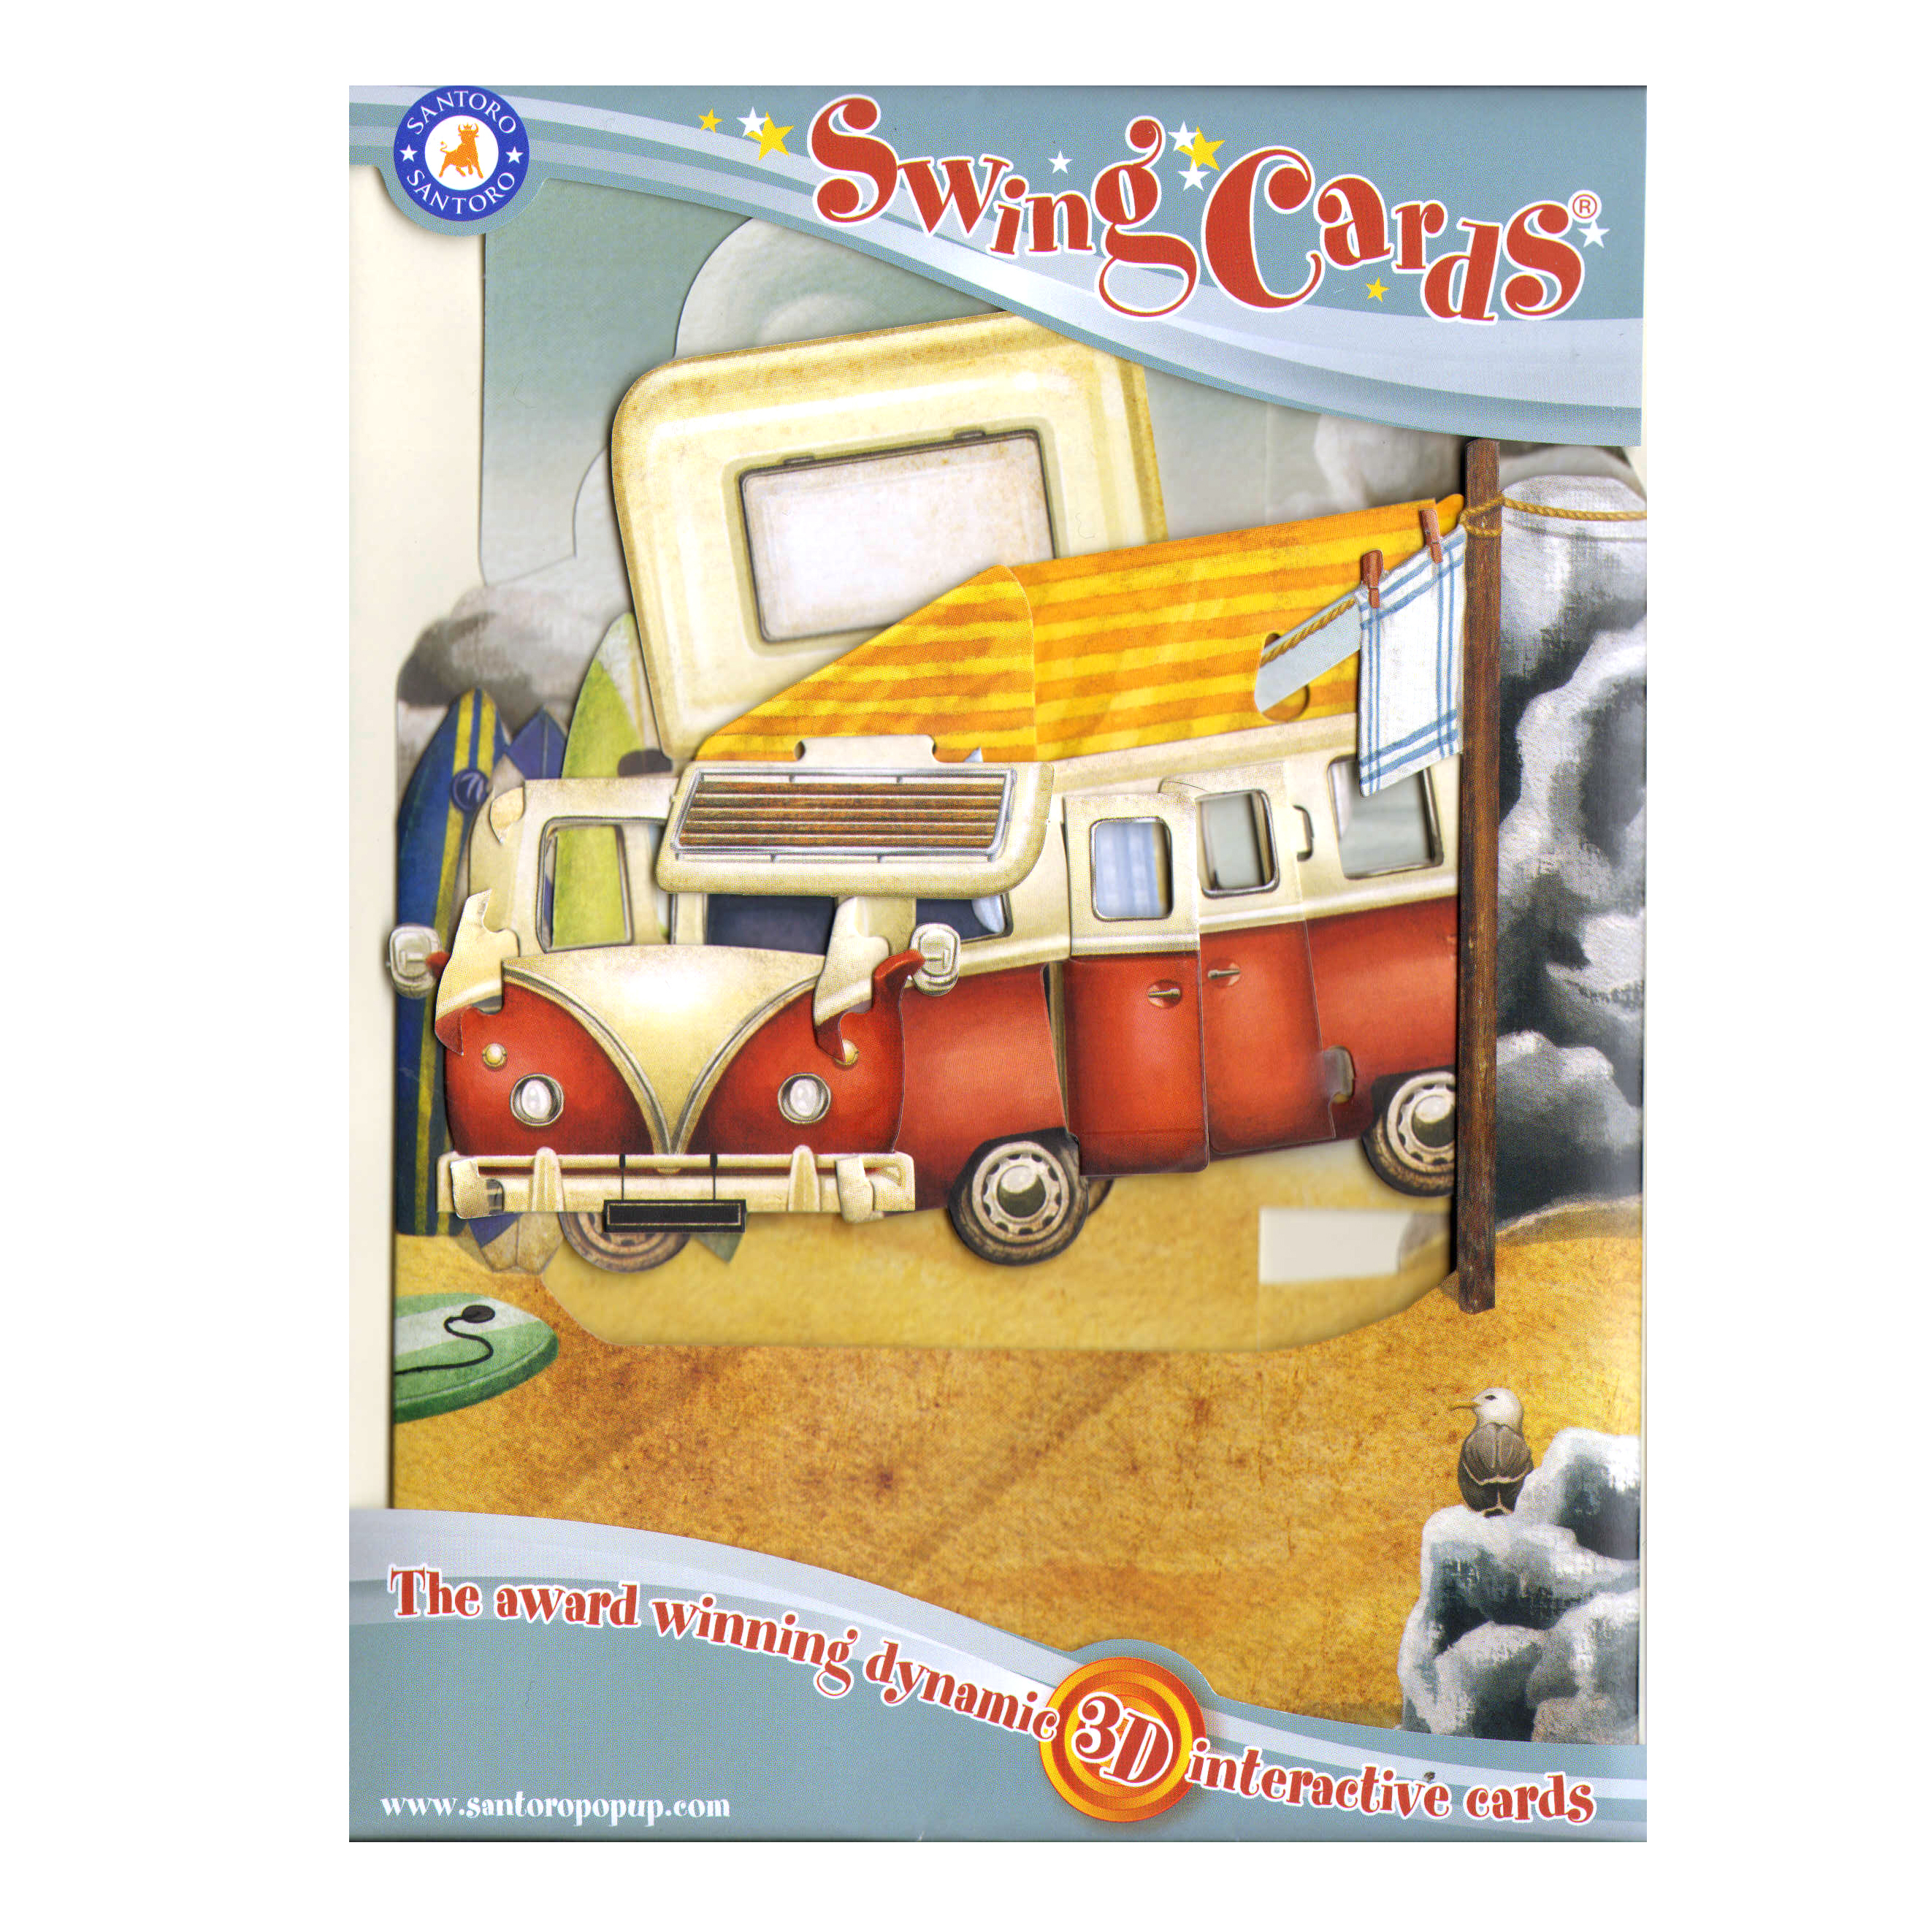 Vw camper van swing card award winning dynamic 3d interactive vw camper van swing card award winning dynamic 3d interactive greetings card kristyandbryce Image collections